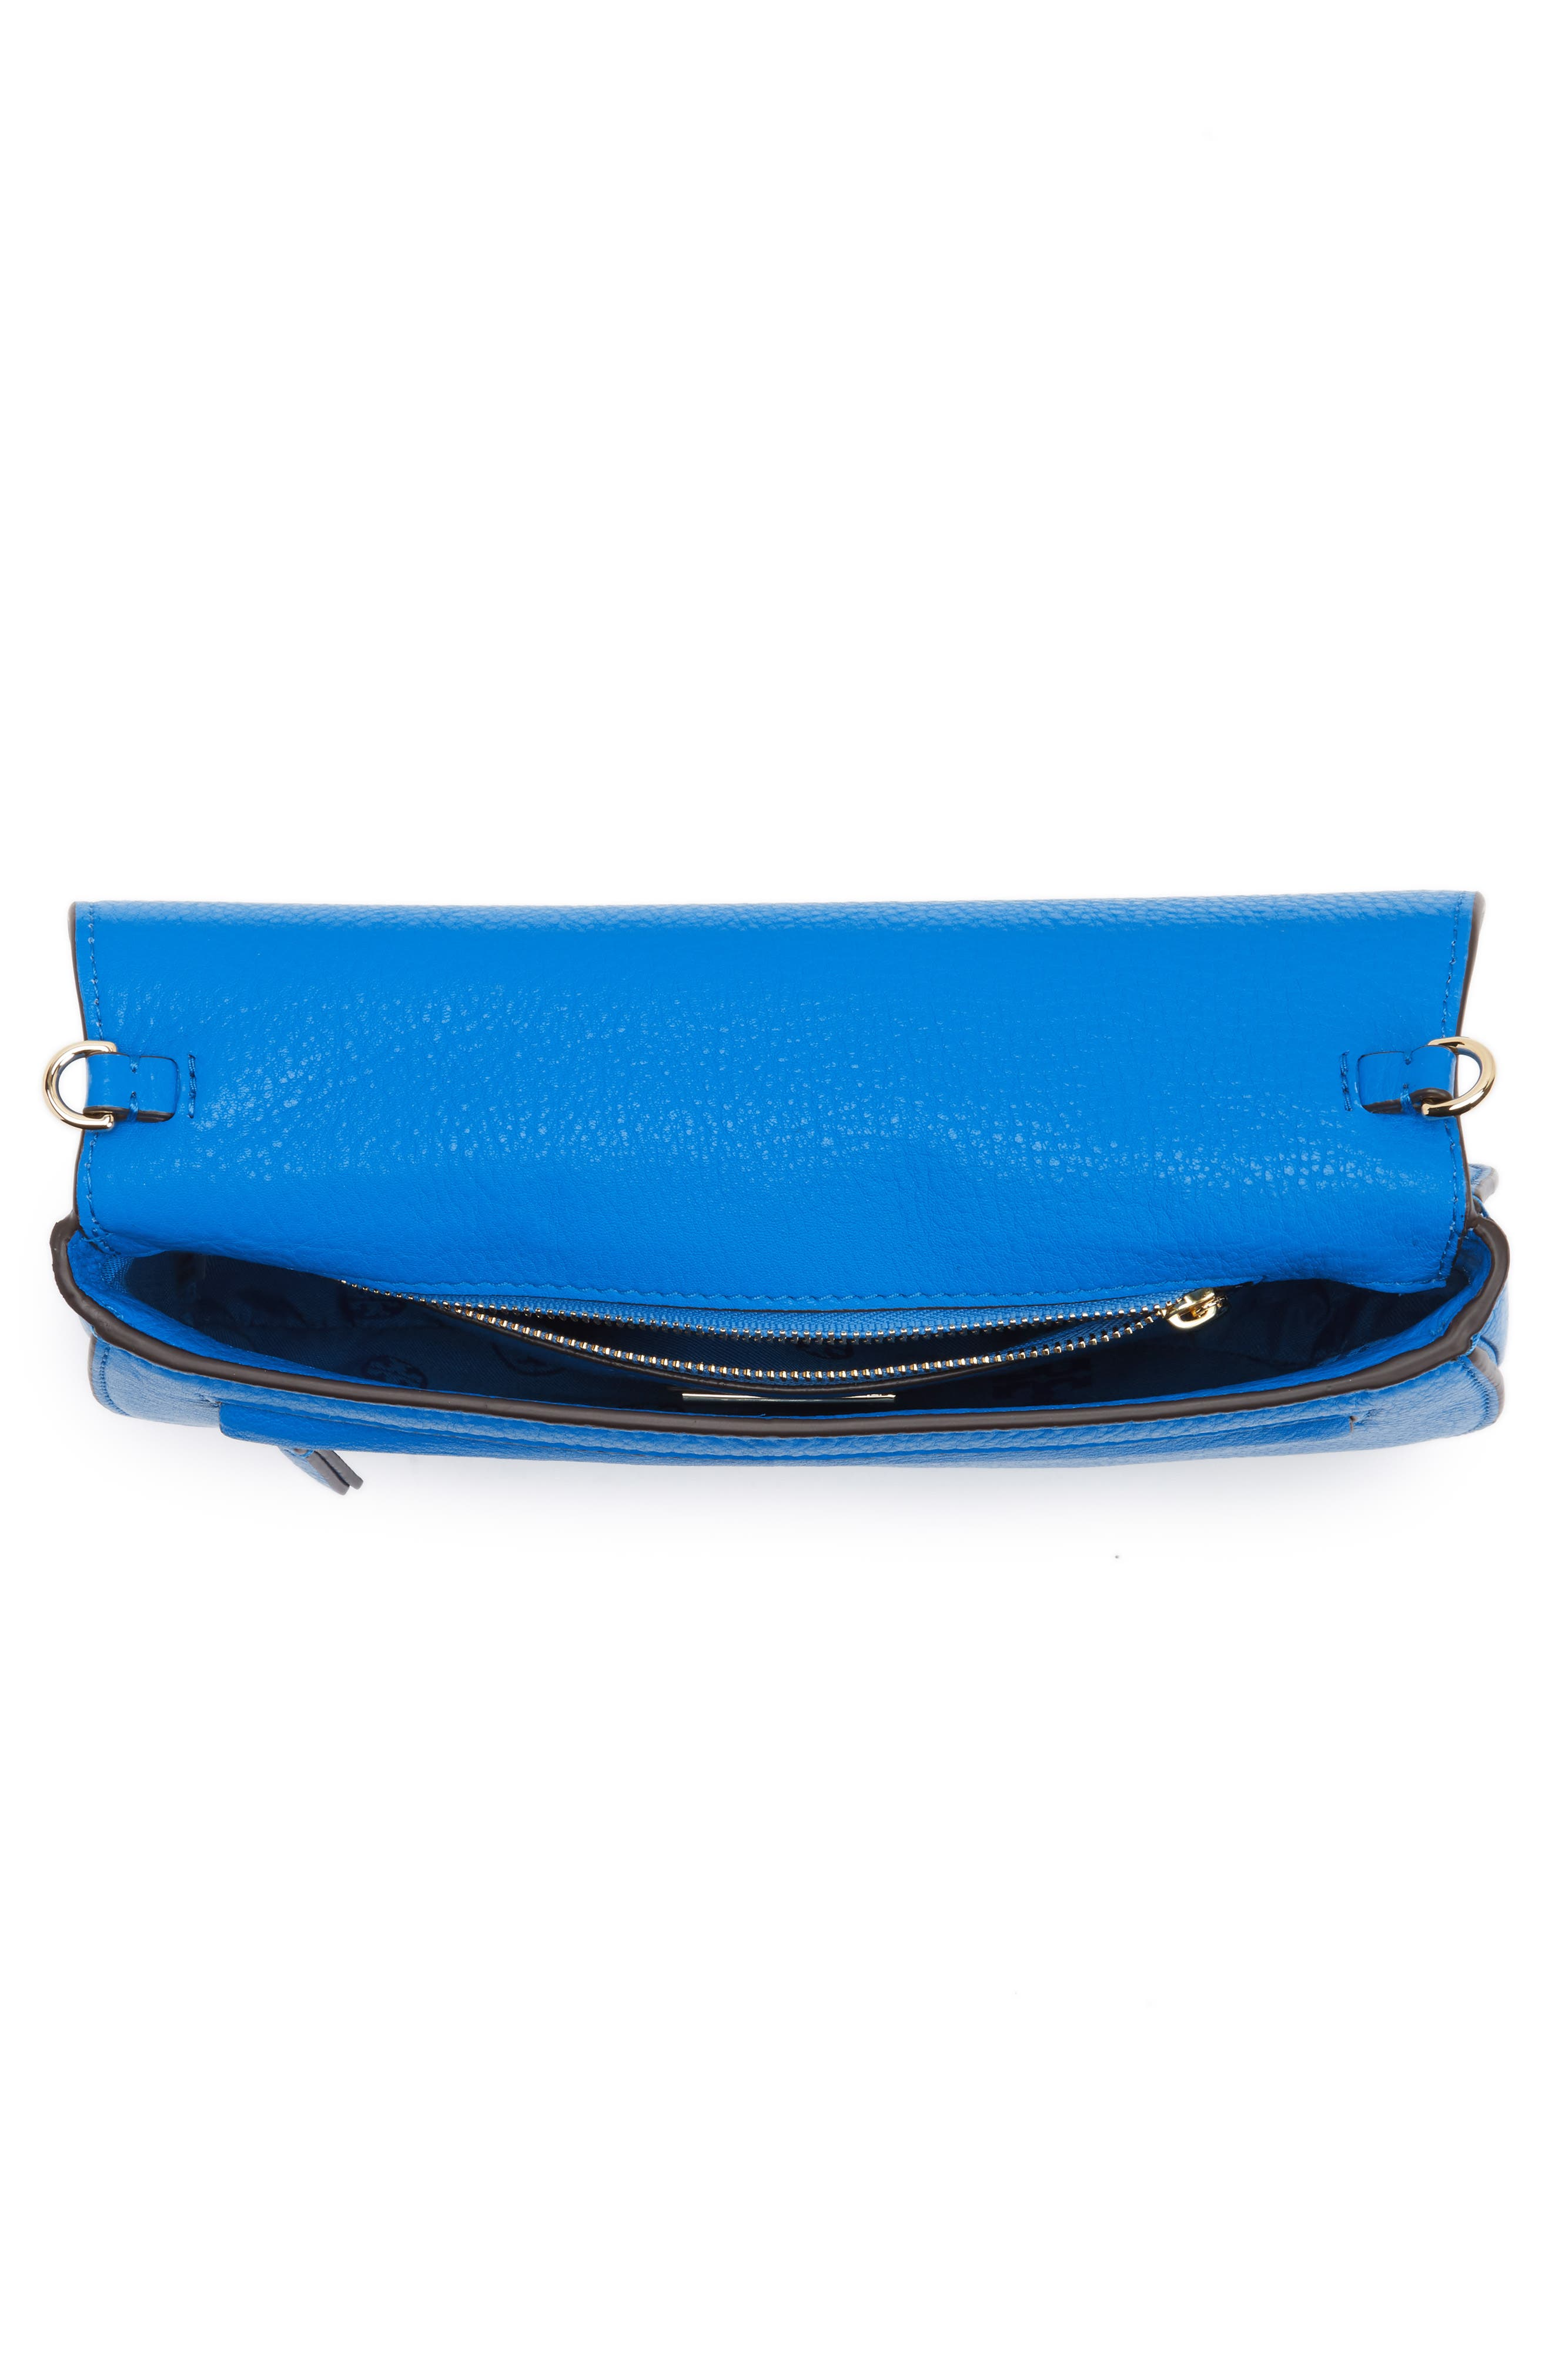 Alternate Image 3  - Tory Burch Jamie Convertible Leather Clutch